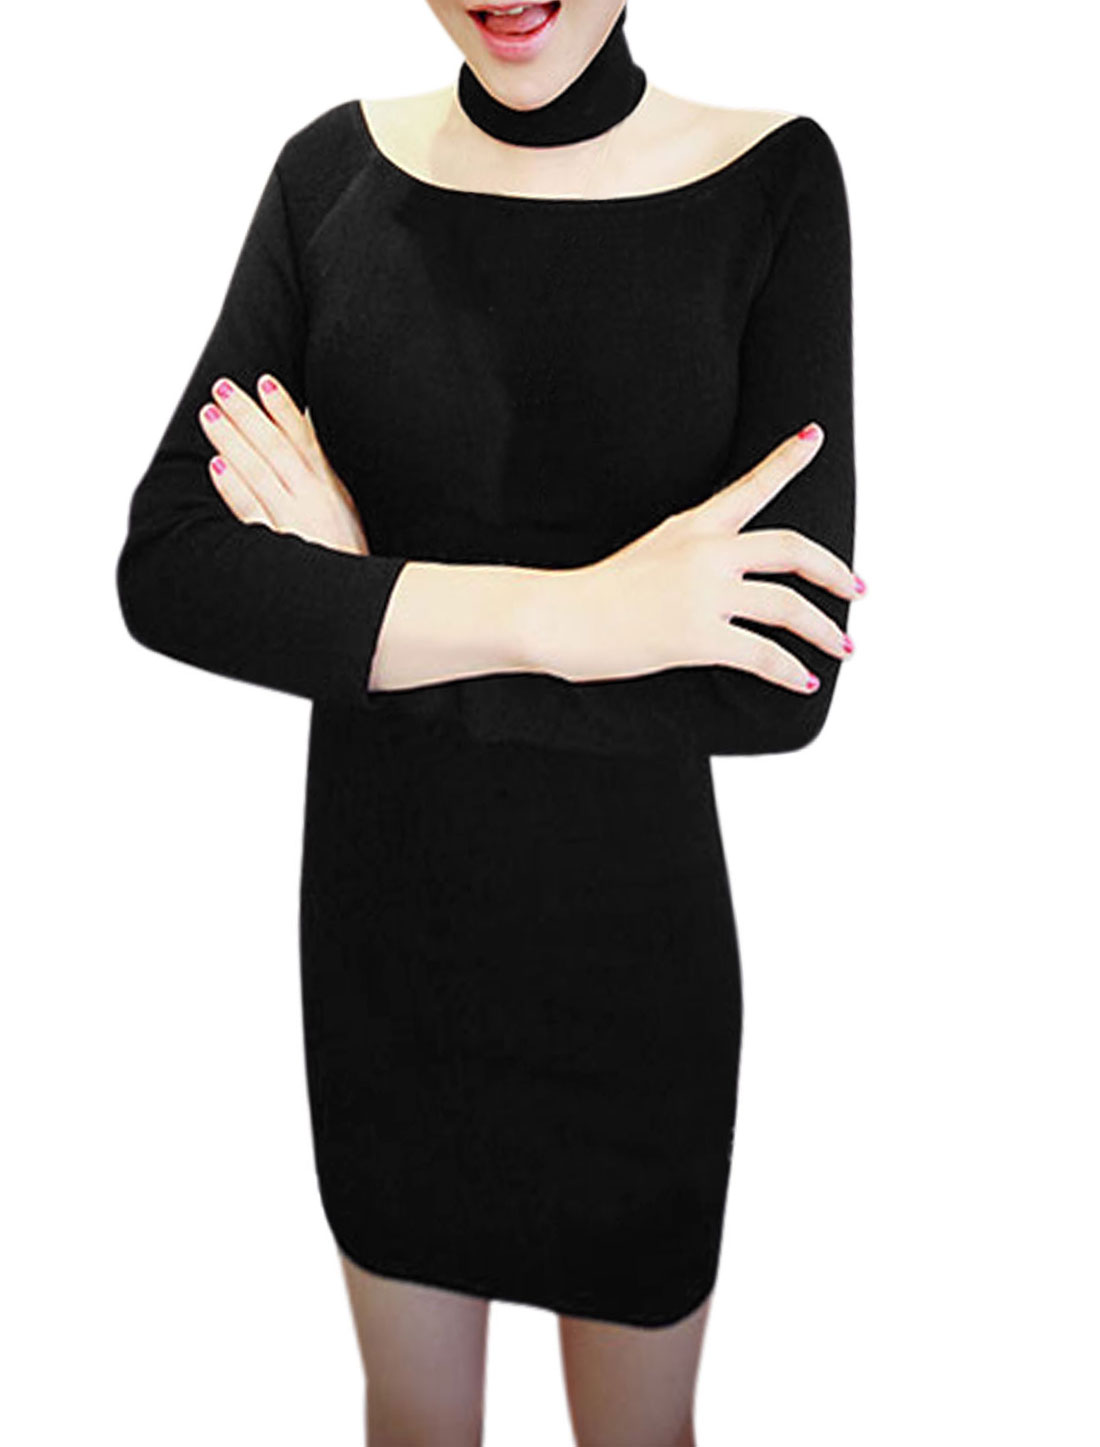 Women Boat Neck Long Sleeve Casual Sheath Dress Black M